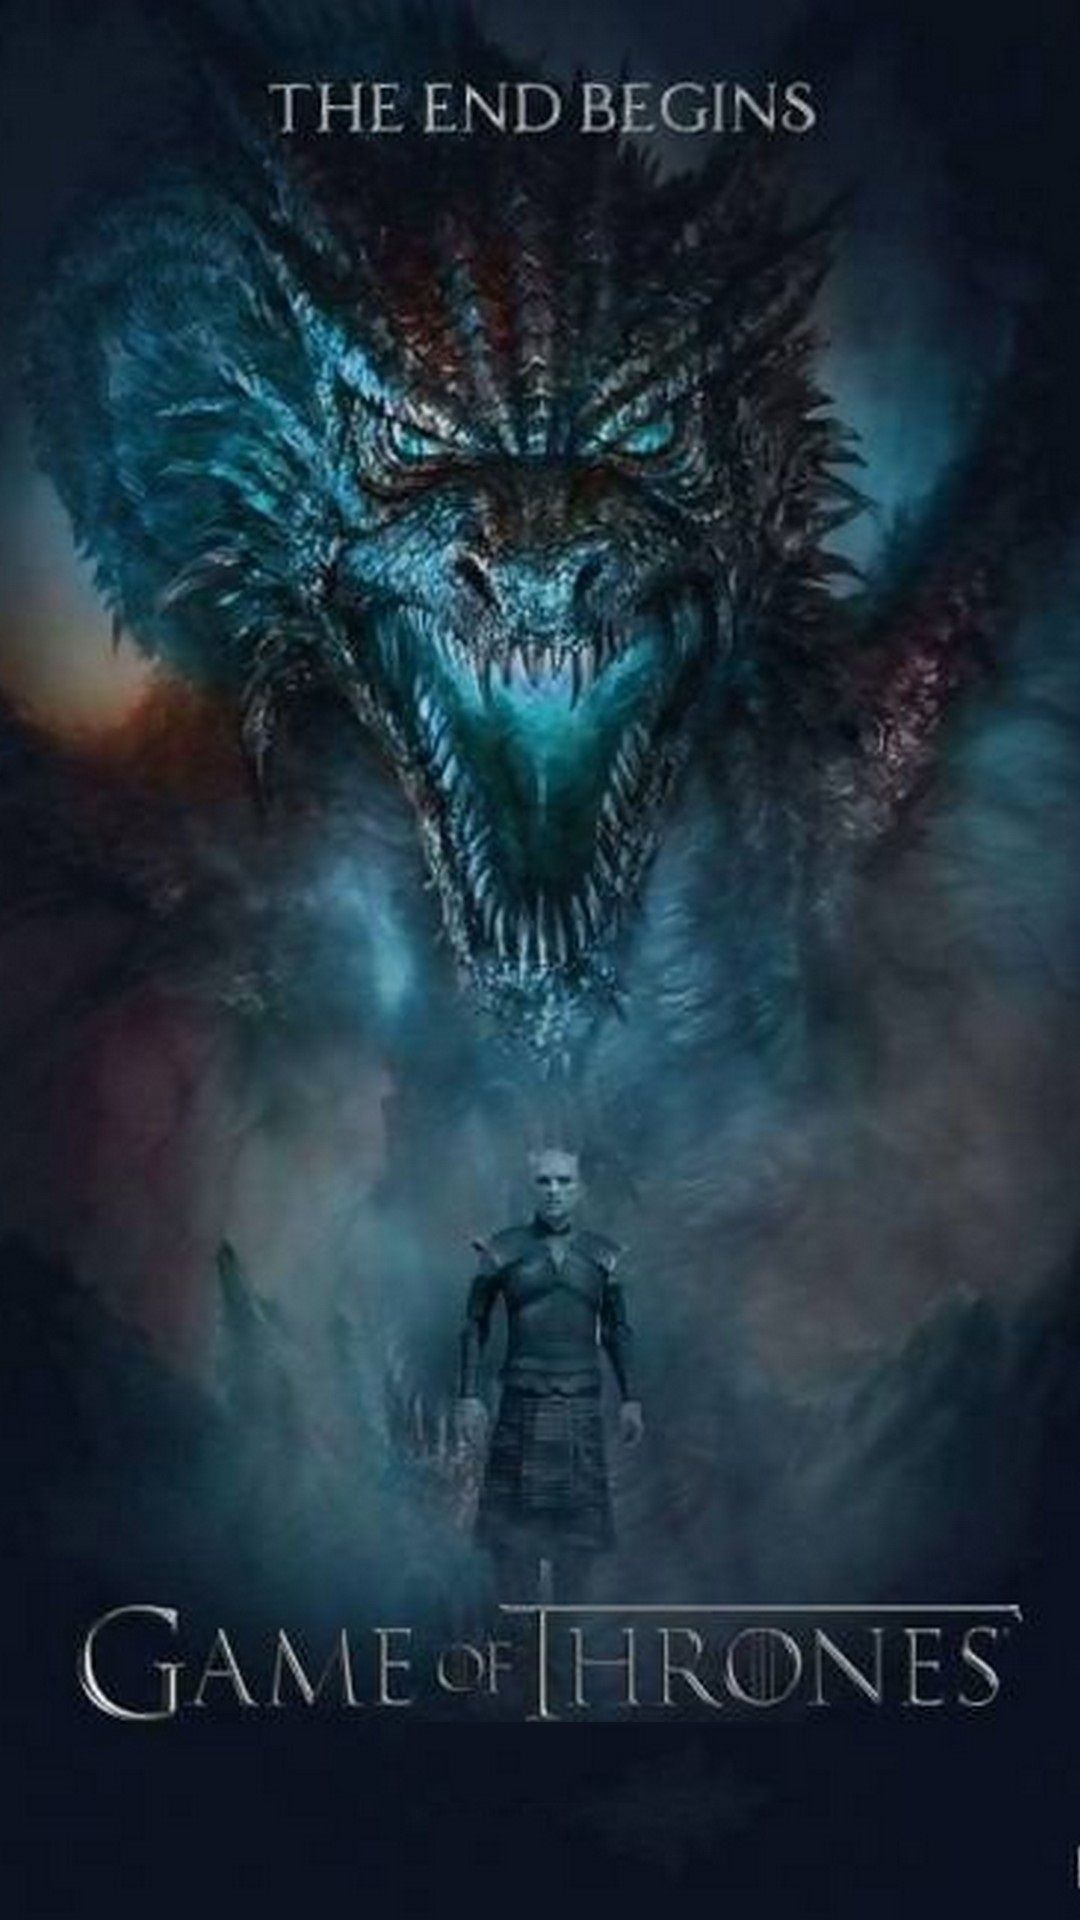 Wallpaper Iphone Game Of Thrones Dragons With Images Game Of